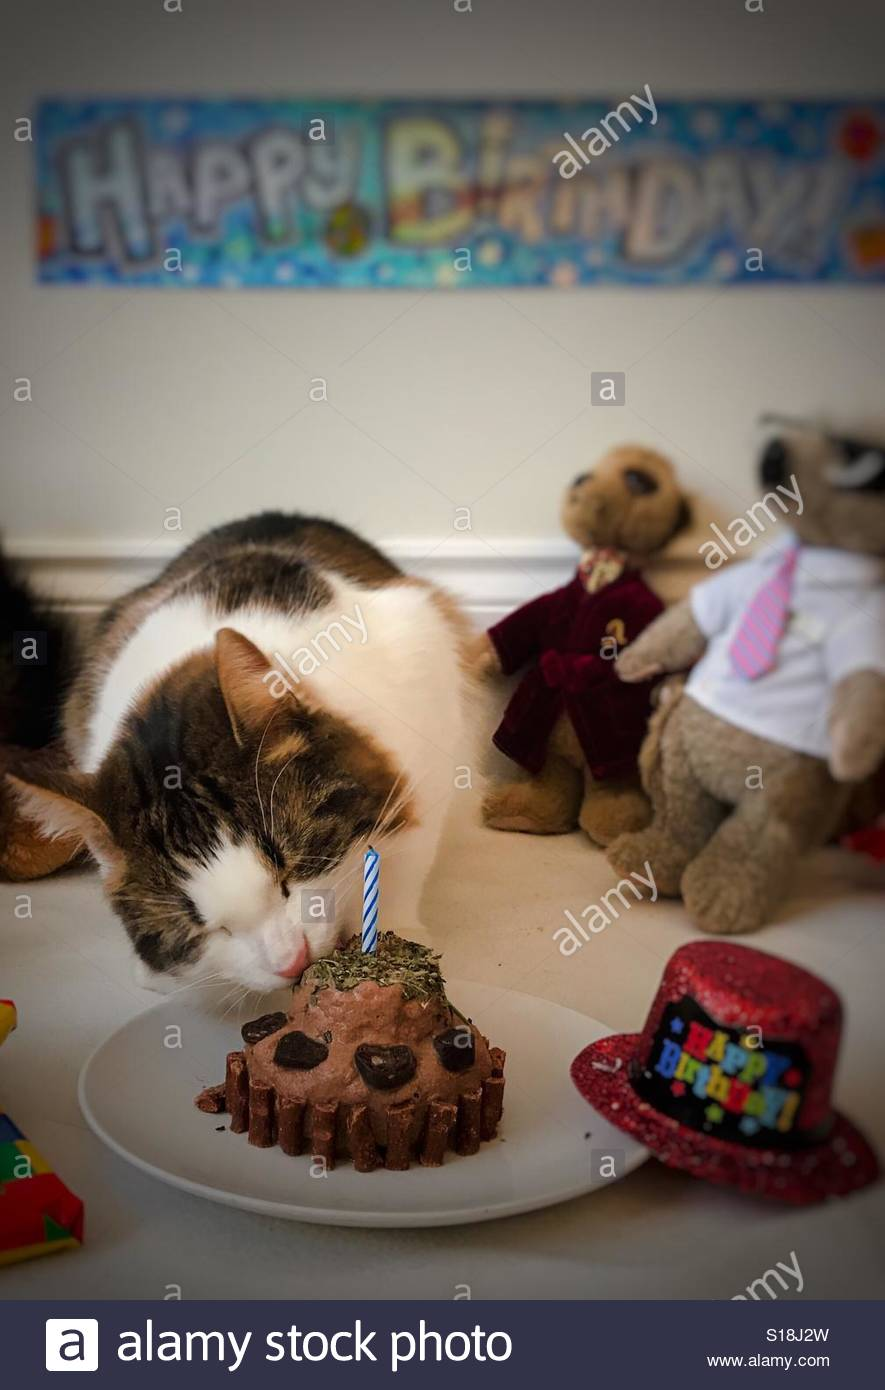 Cat Birthday Cake Stock Photos Images